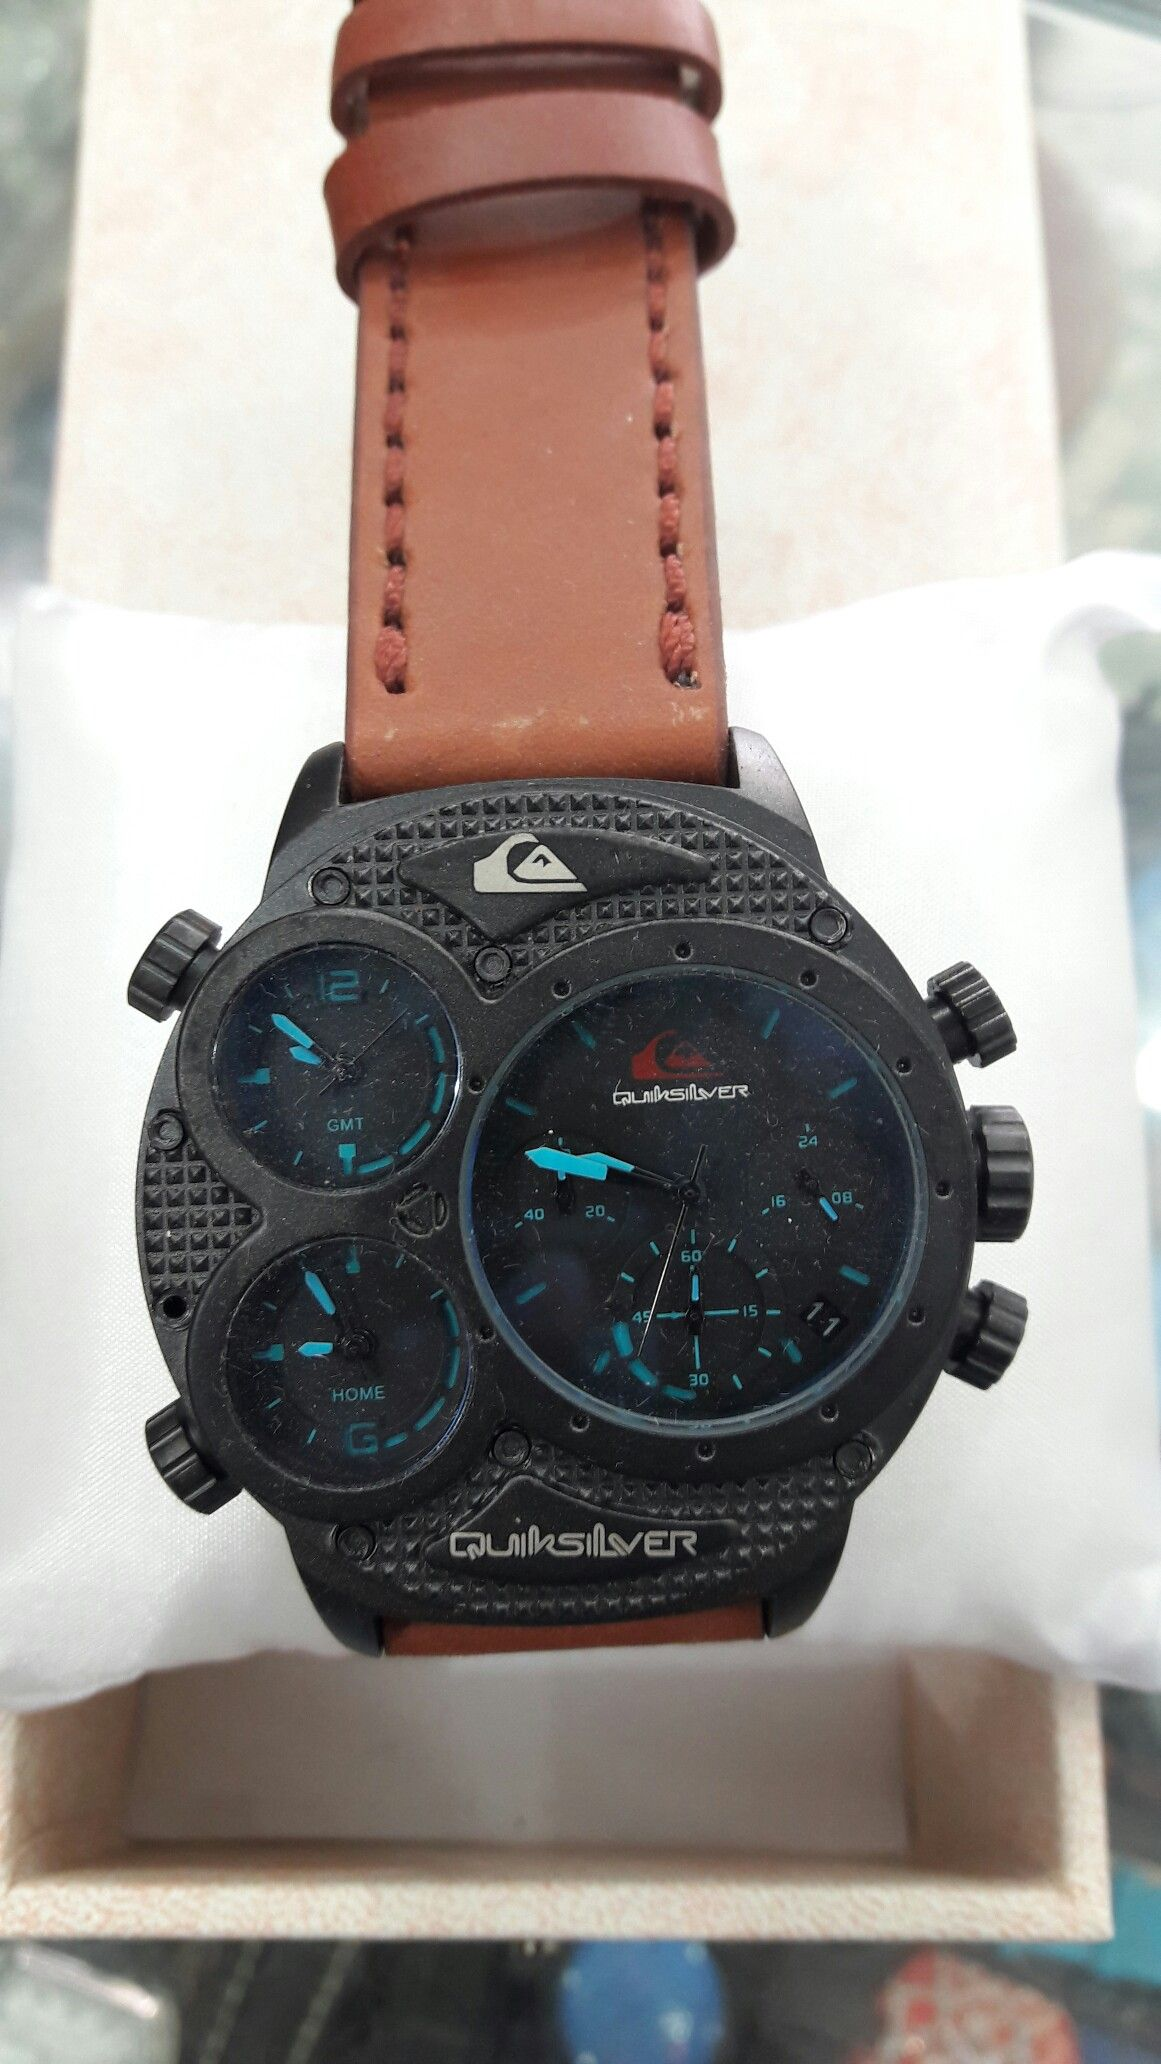 Watches Shops Wrist Watches Tents Tag Watches Clocks